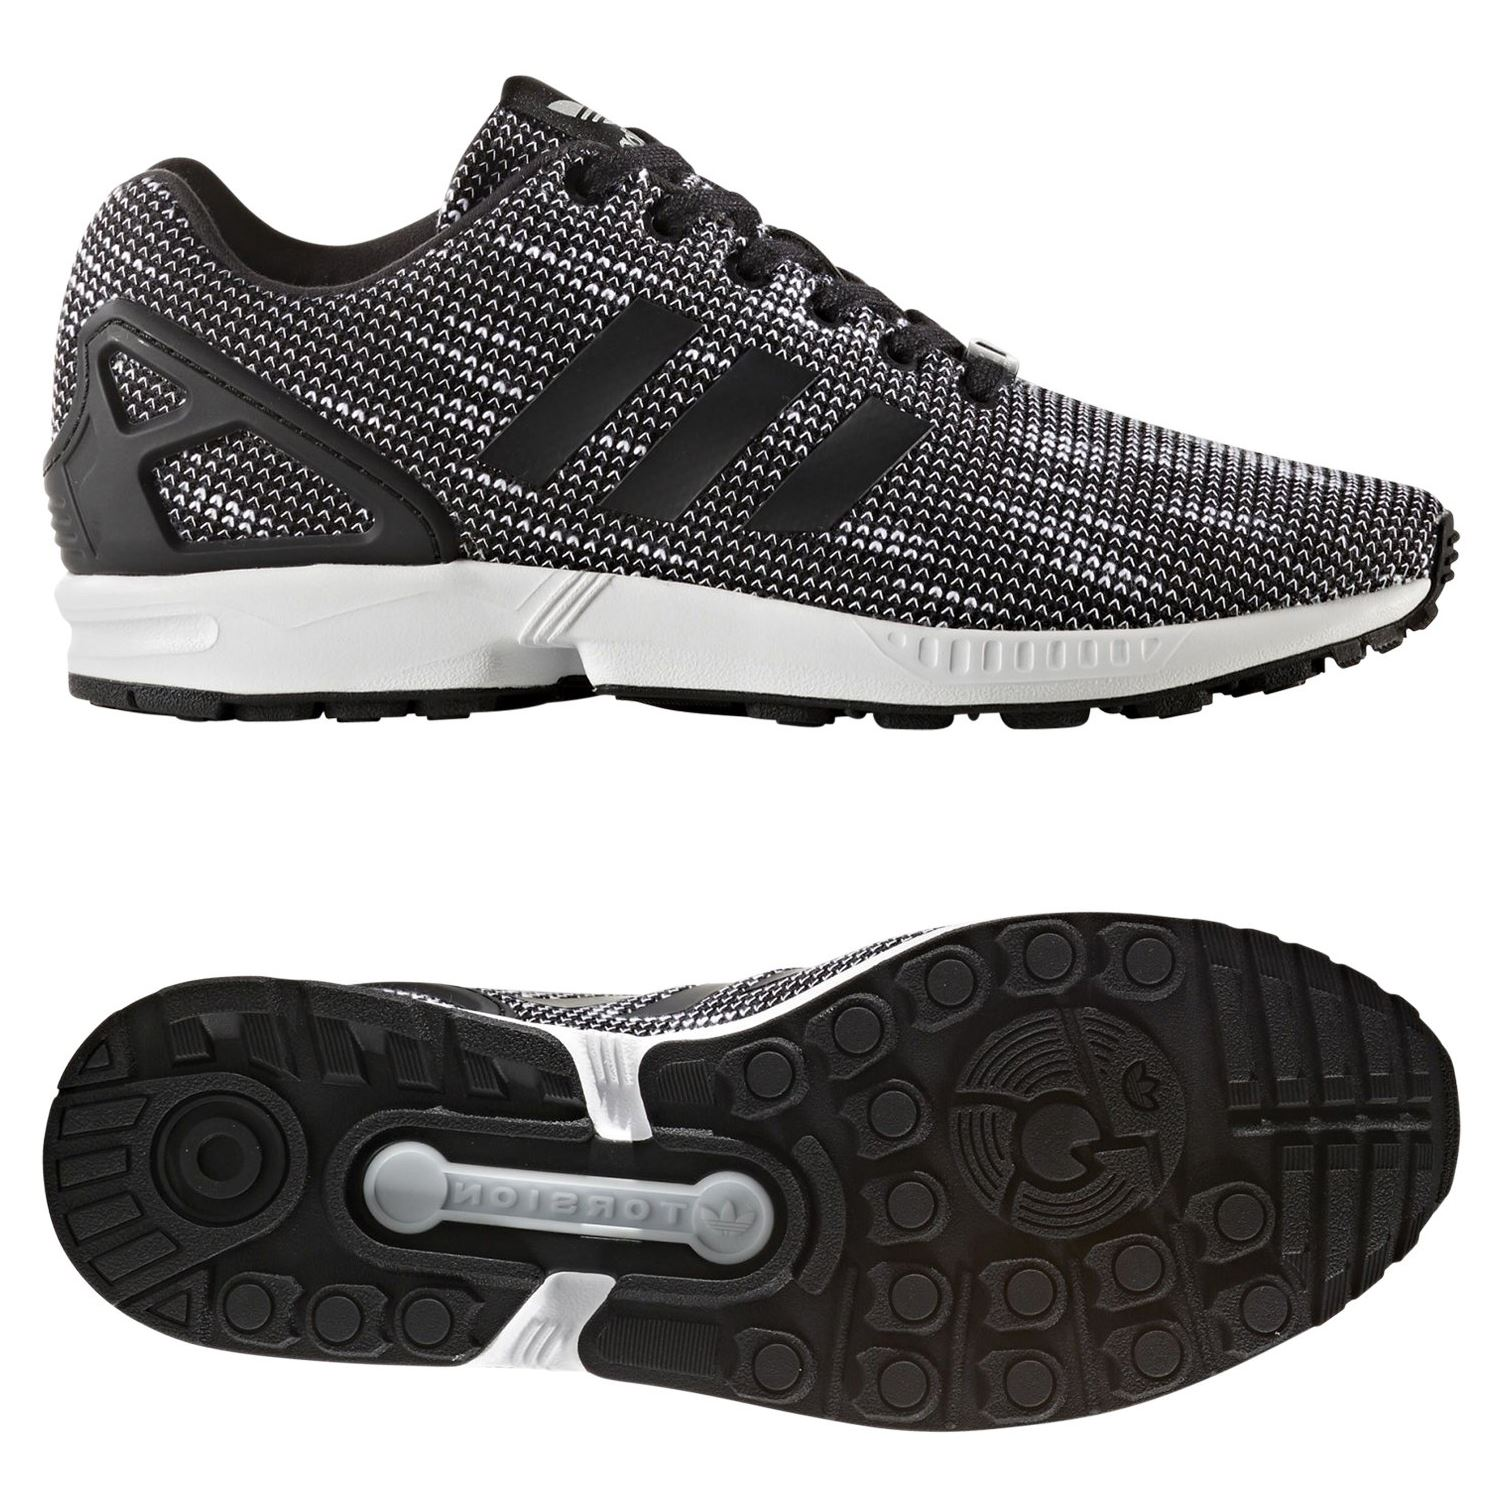 b9c3d8b4a Details about adidas ORIGINALS MEN S ZX FLUX TRAINERS SNEAKERS SHOE BLACK  GYM RUNNING NEW BNWT